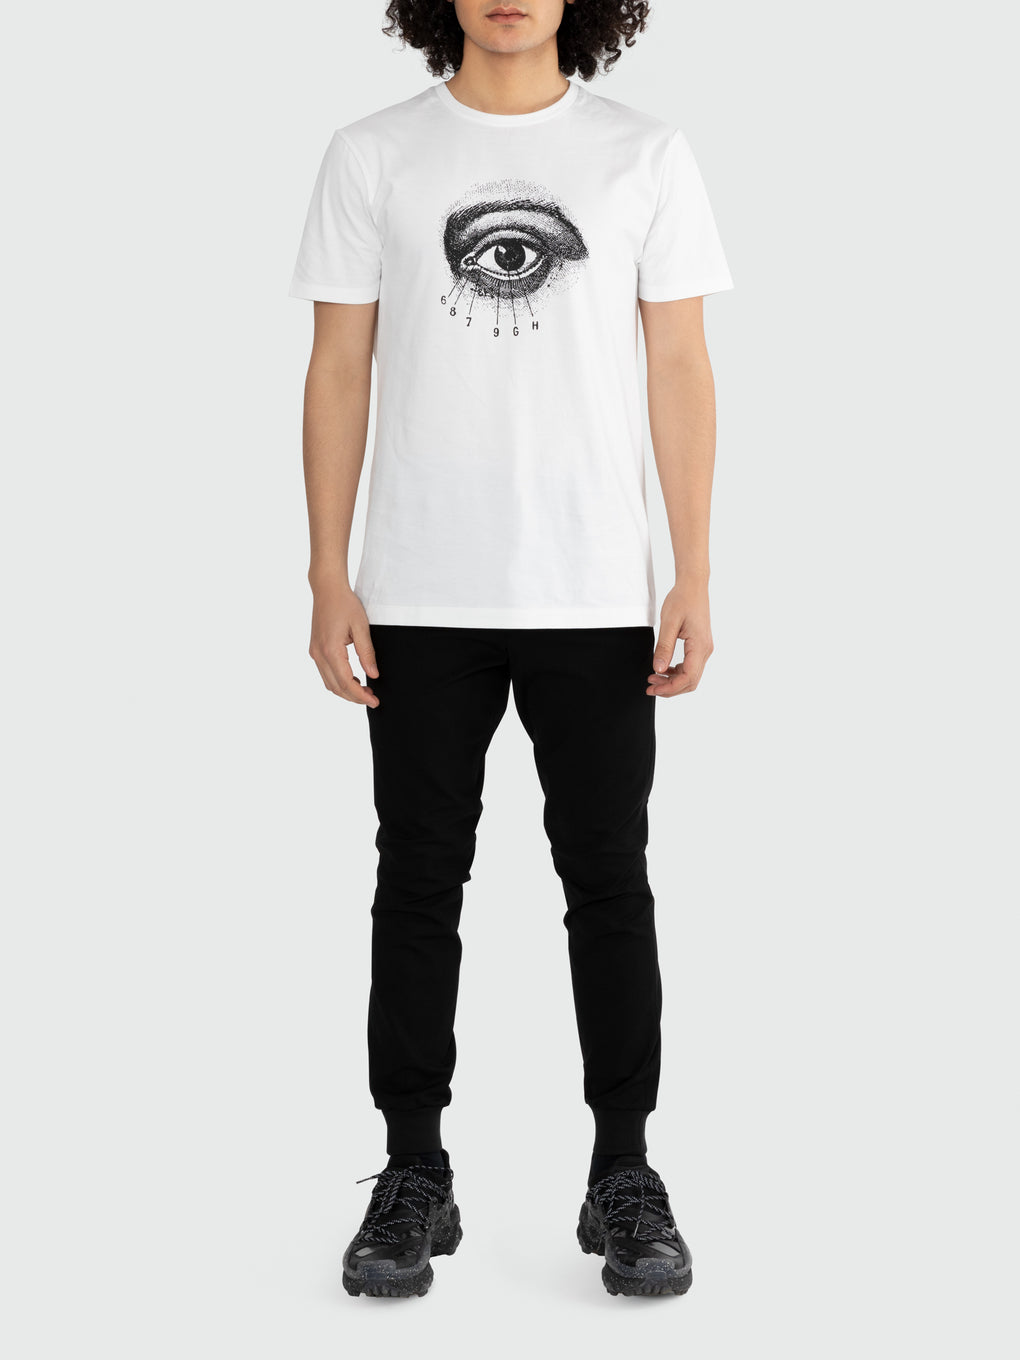 The Third Eye Tee